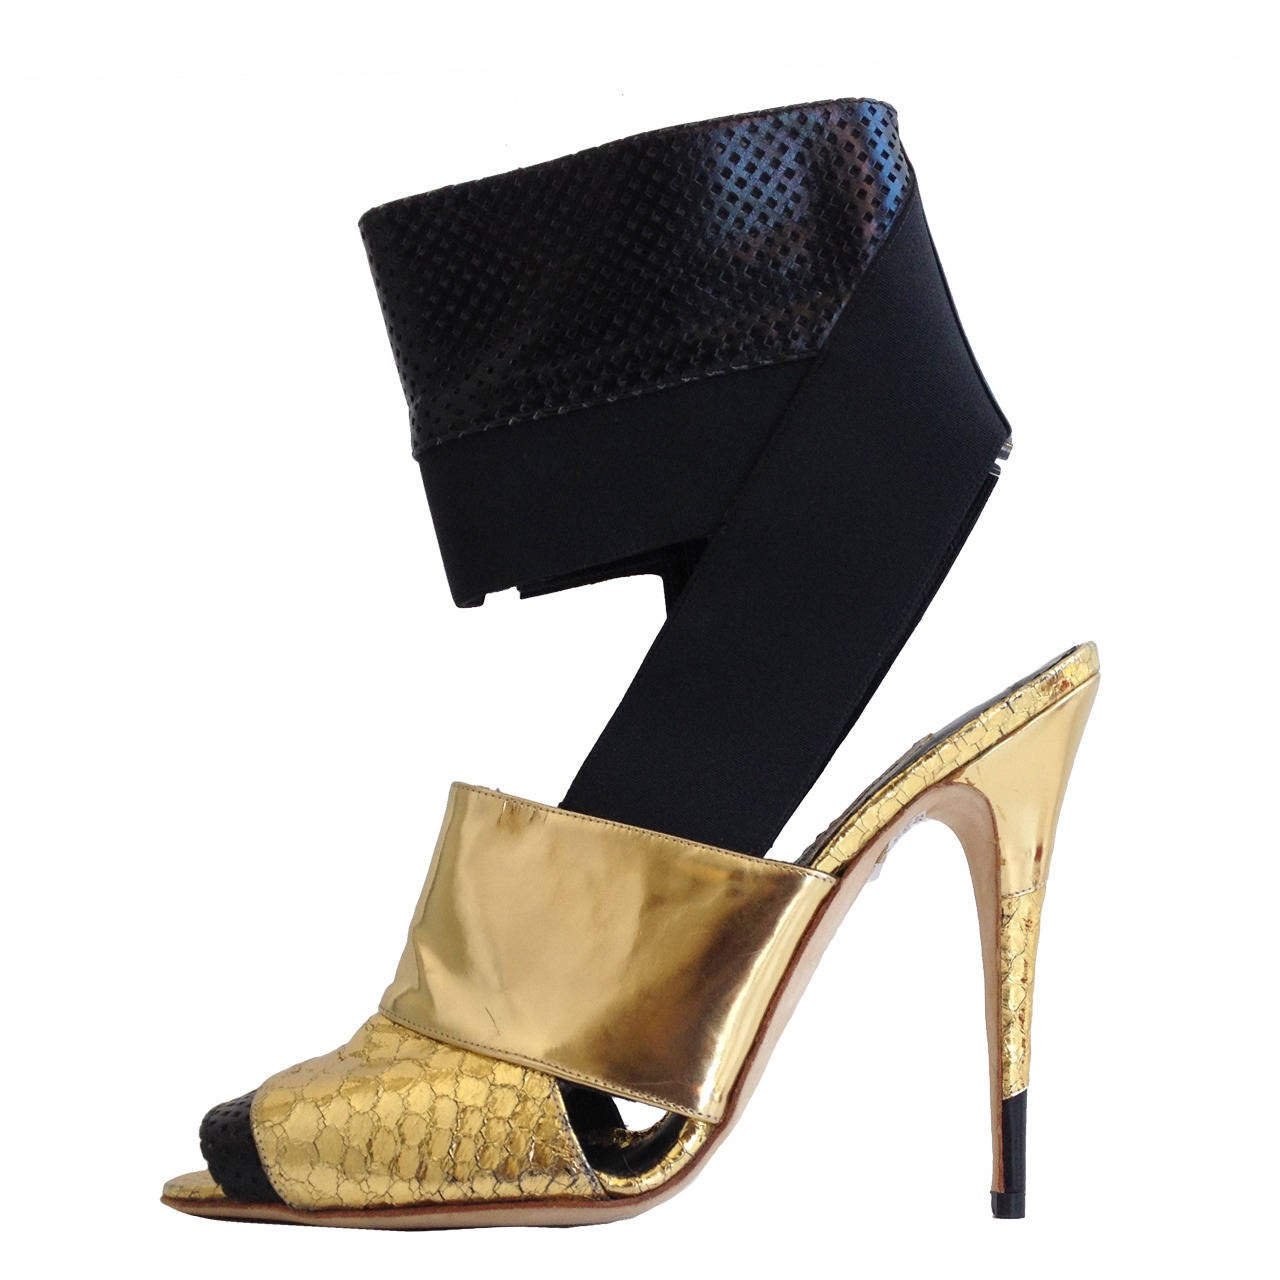 Manolo Blahnik Black and Gold Metallic Heels 1